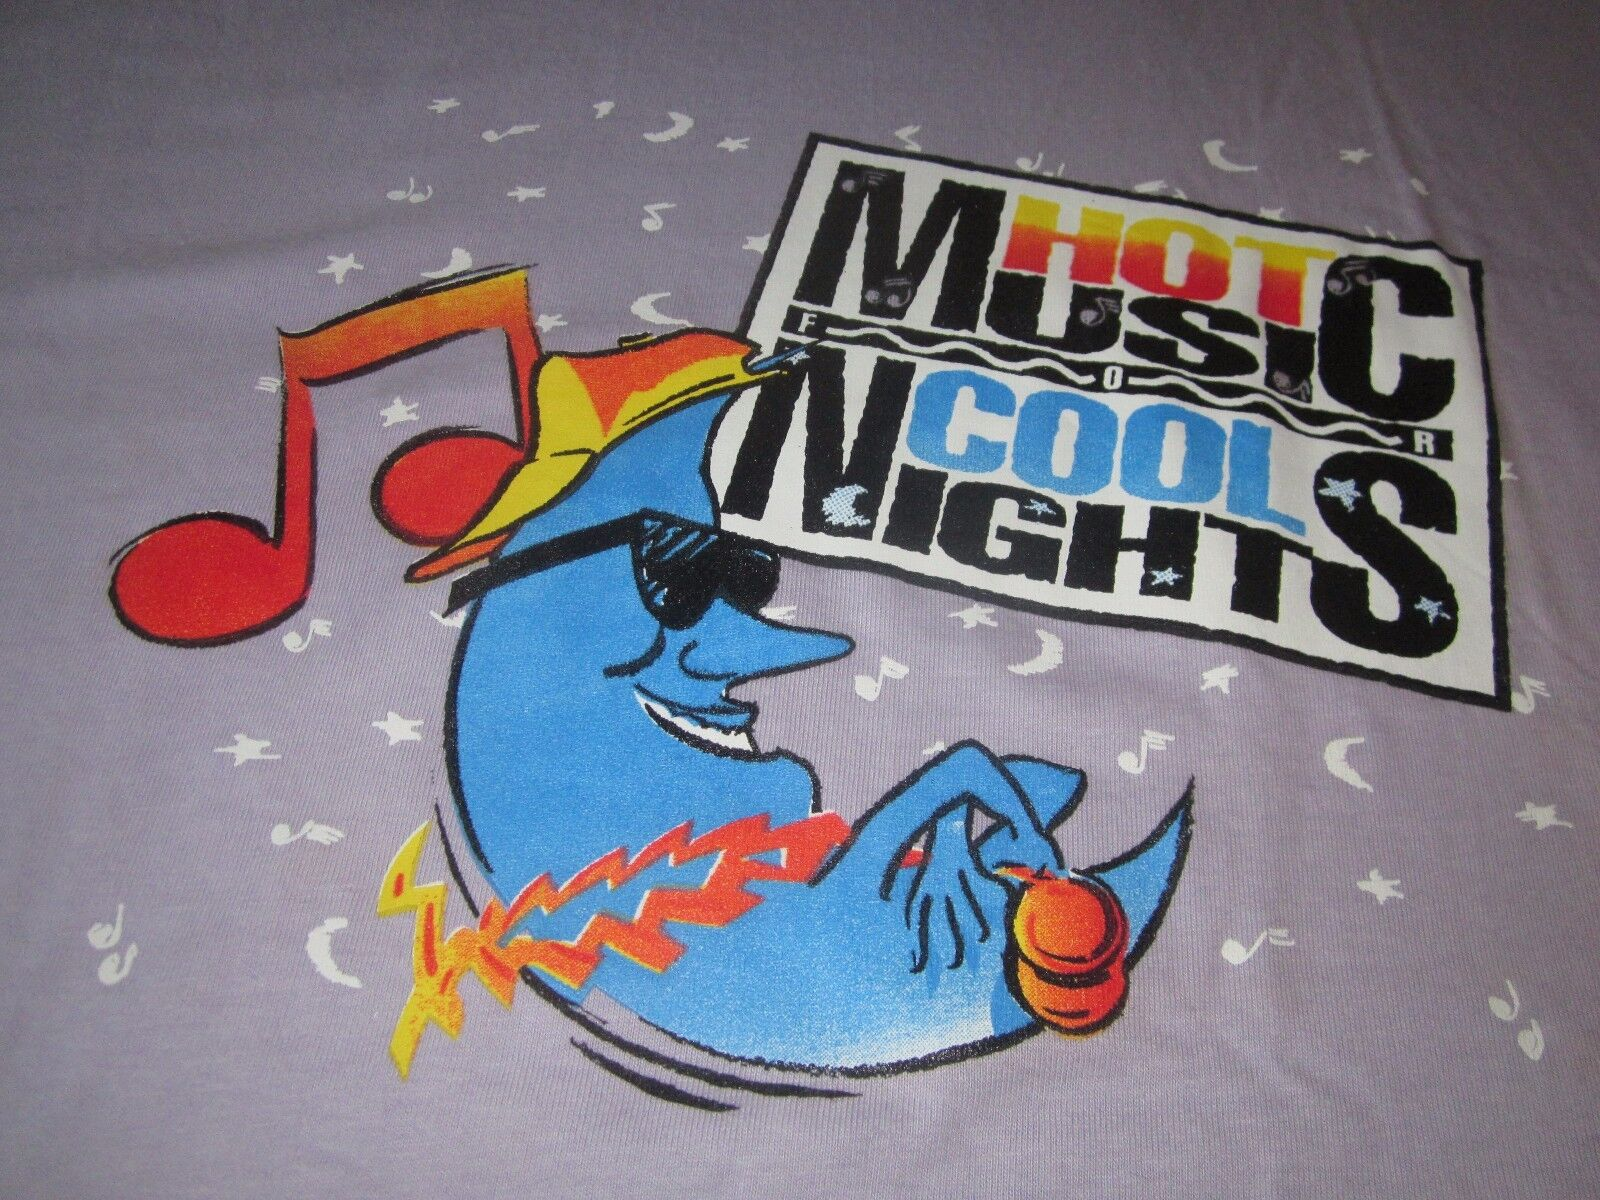 HOT MUSIC COOL NIGHTS VINTAGE 80S CONCERT SHIRT CRY WOLF DAVE KOZ KING TEE HIP